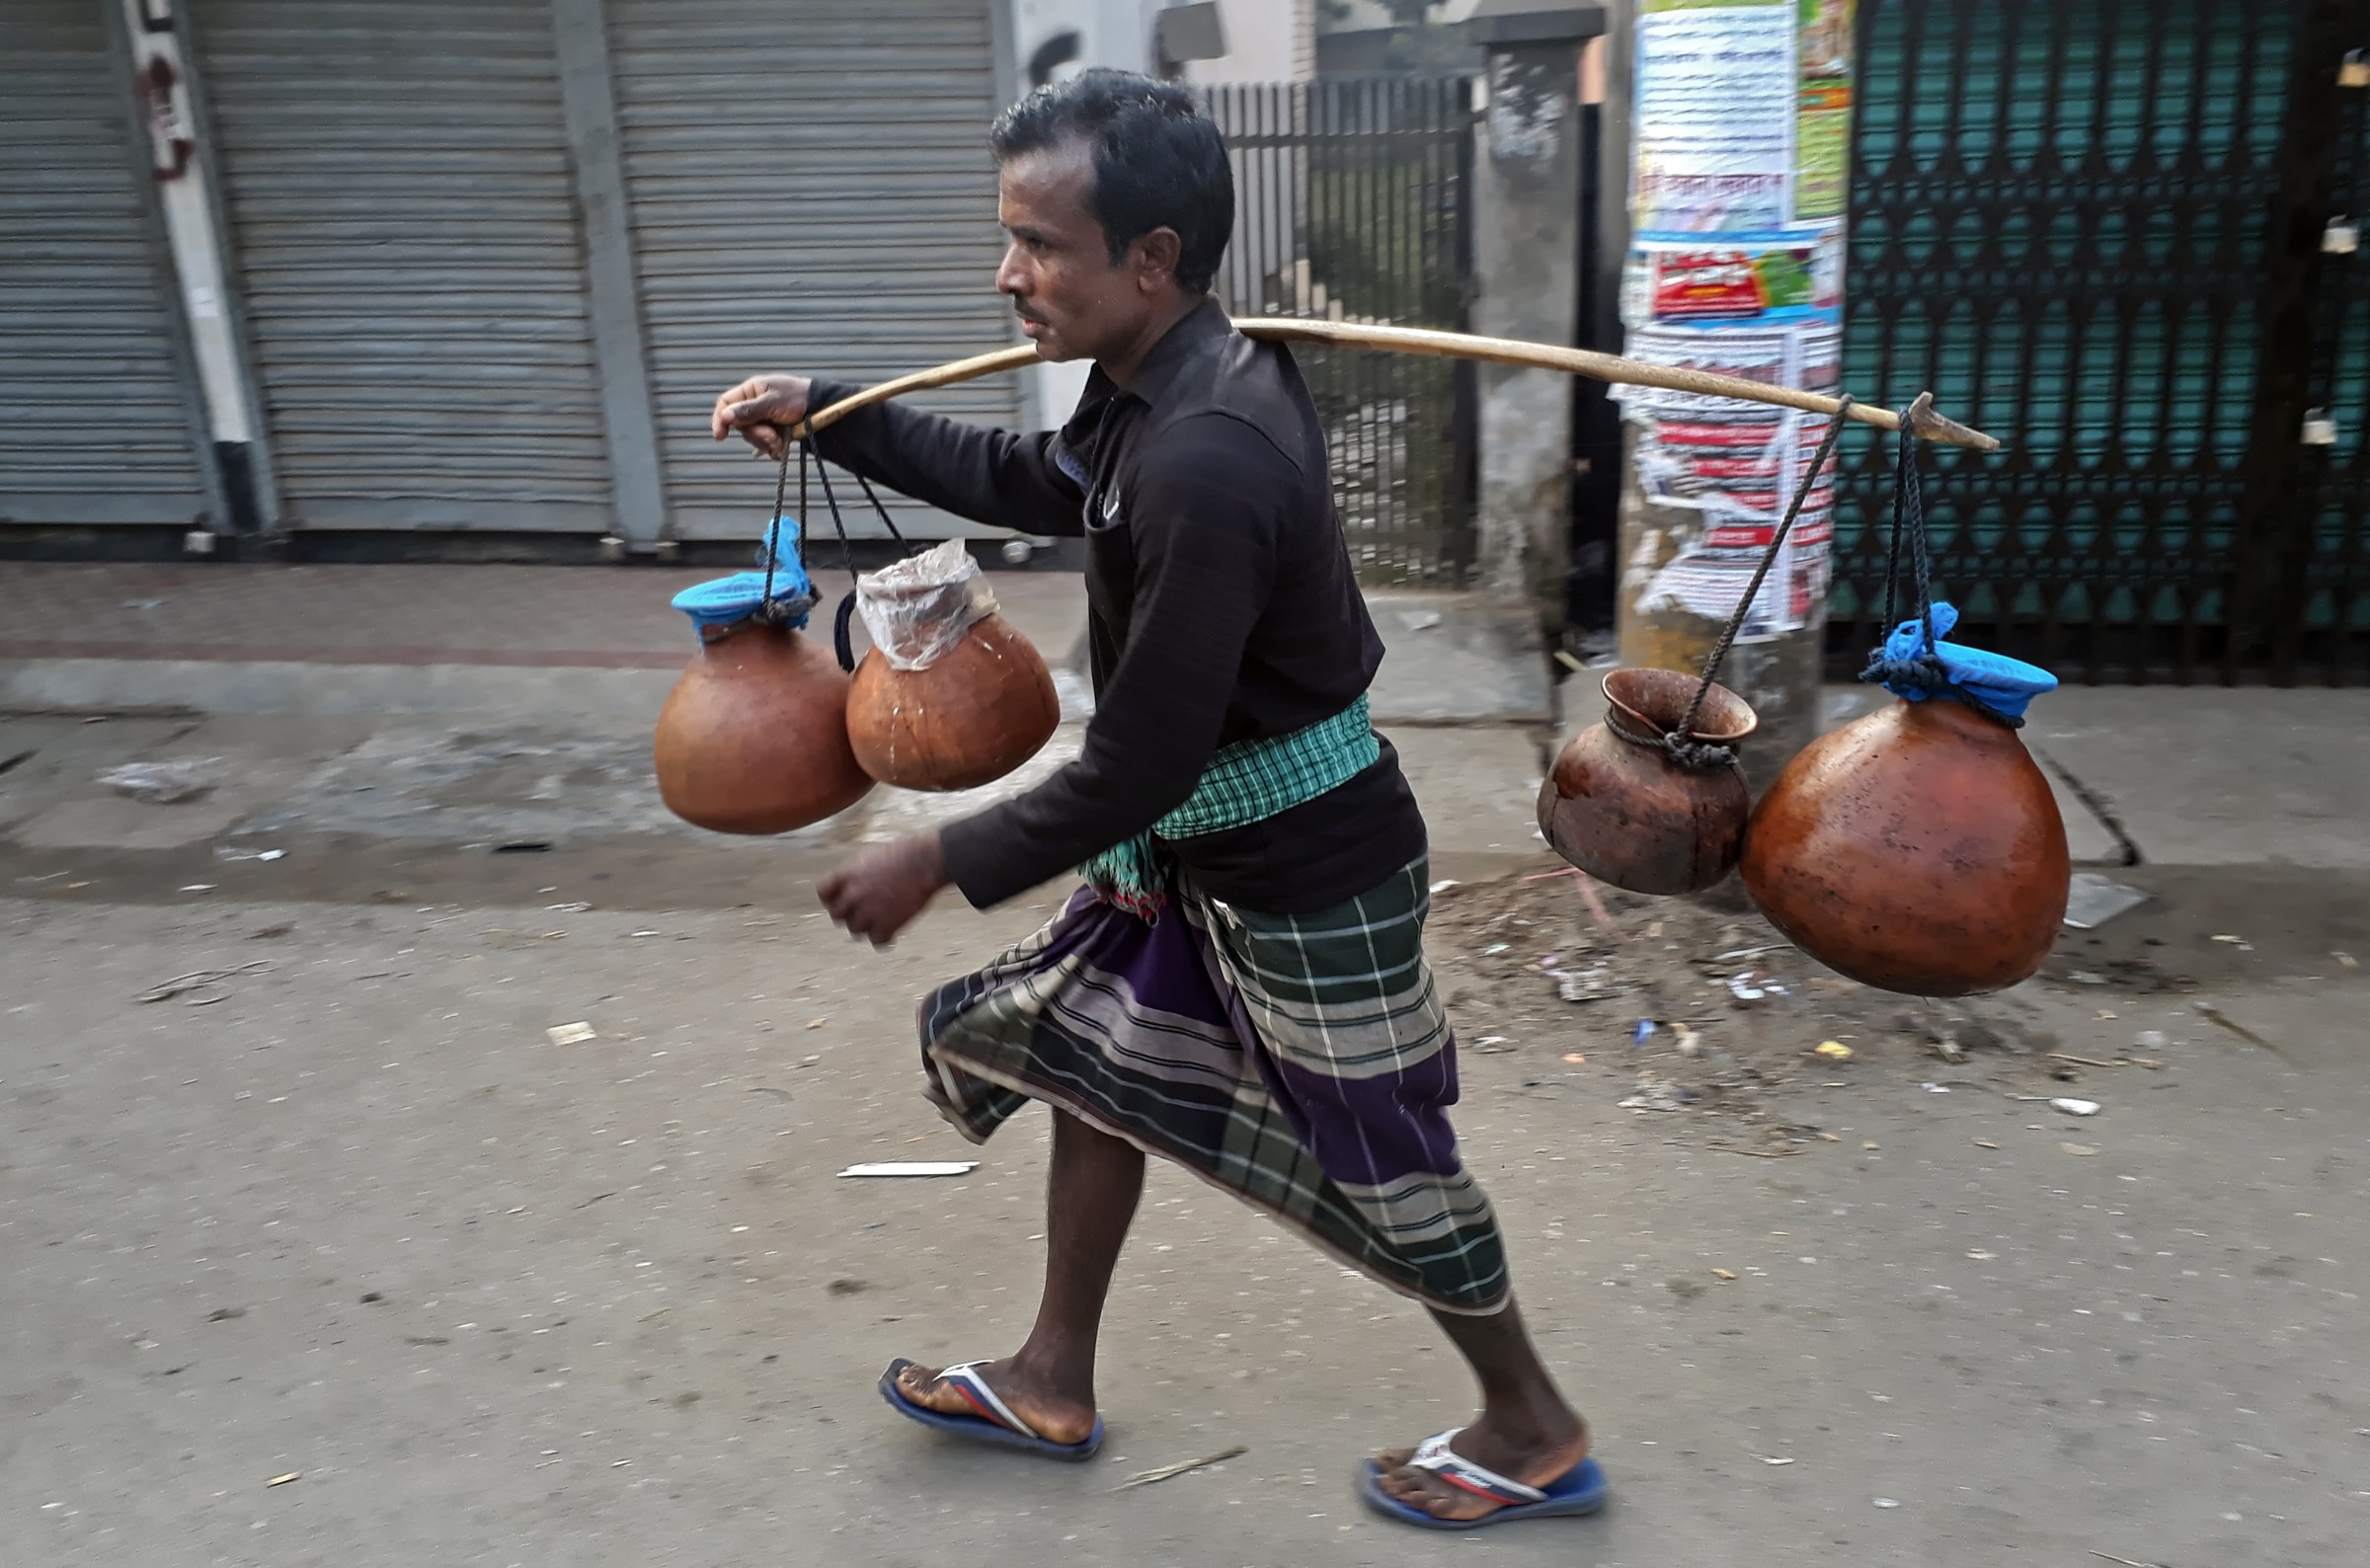 A gachhi walks the streets of Rangpur City carrying pots filled with sap collected from date palm trees (<em>Phoenix dactylifera</em>), a delicacy in this part of Bangladesh. Photograph by A.M. Ahad